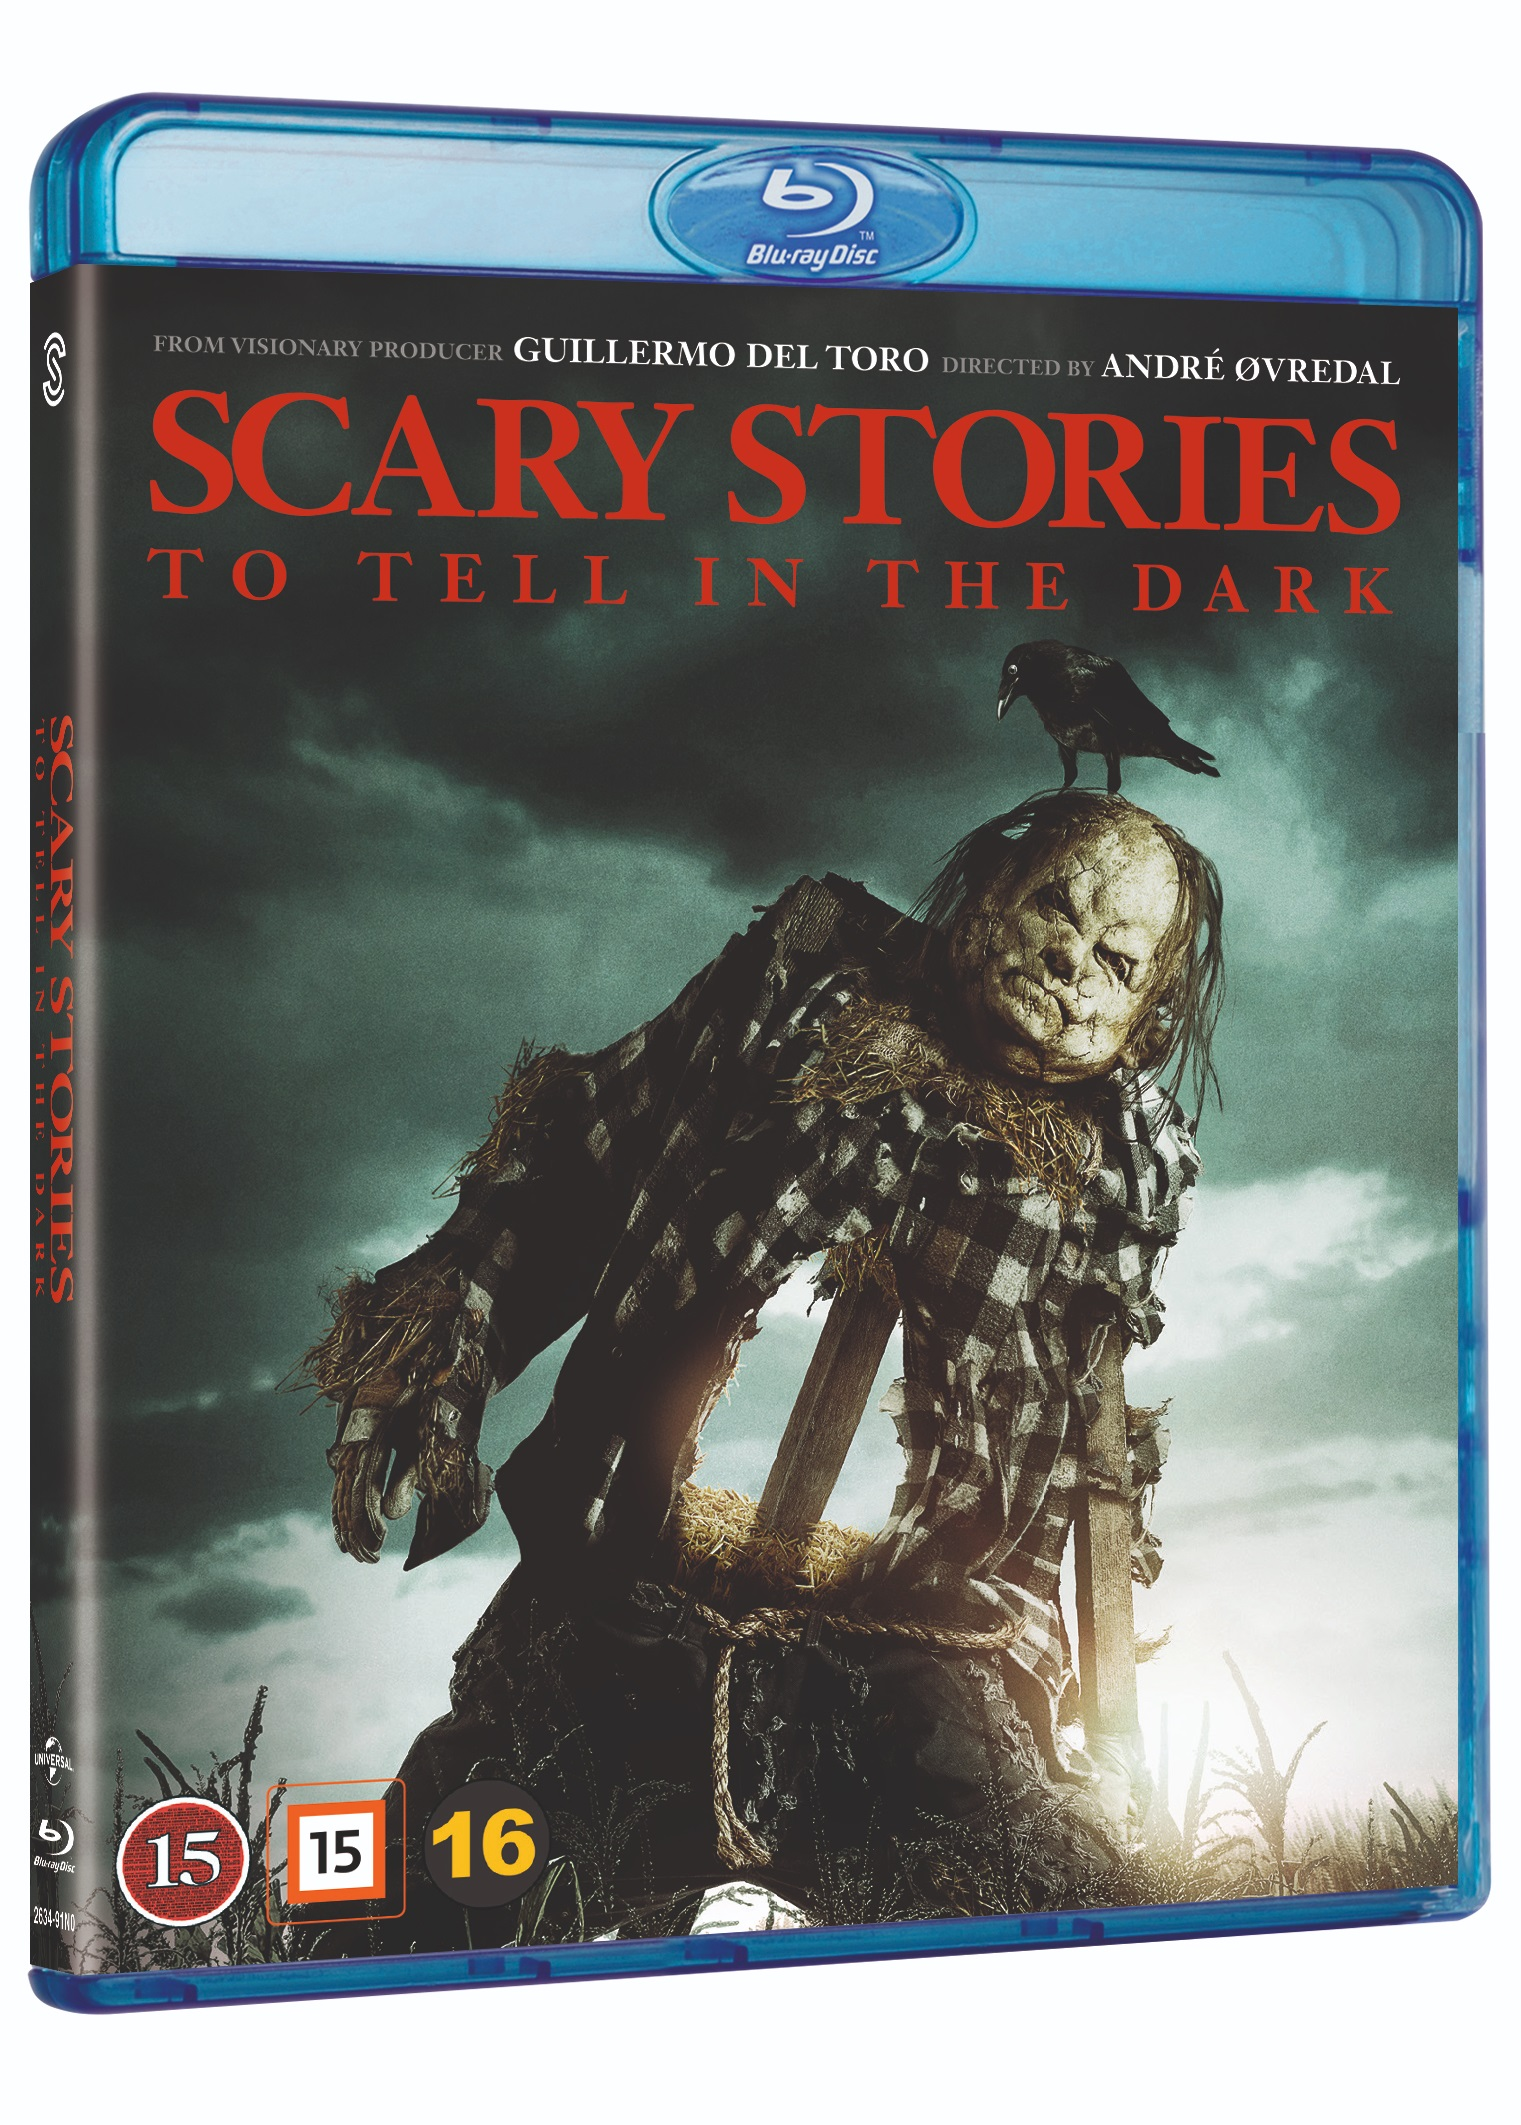 Scary Stories to Tell in the Dark -  - Film -  - 5706169002101 - 12/12-2019